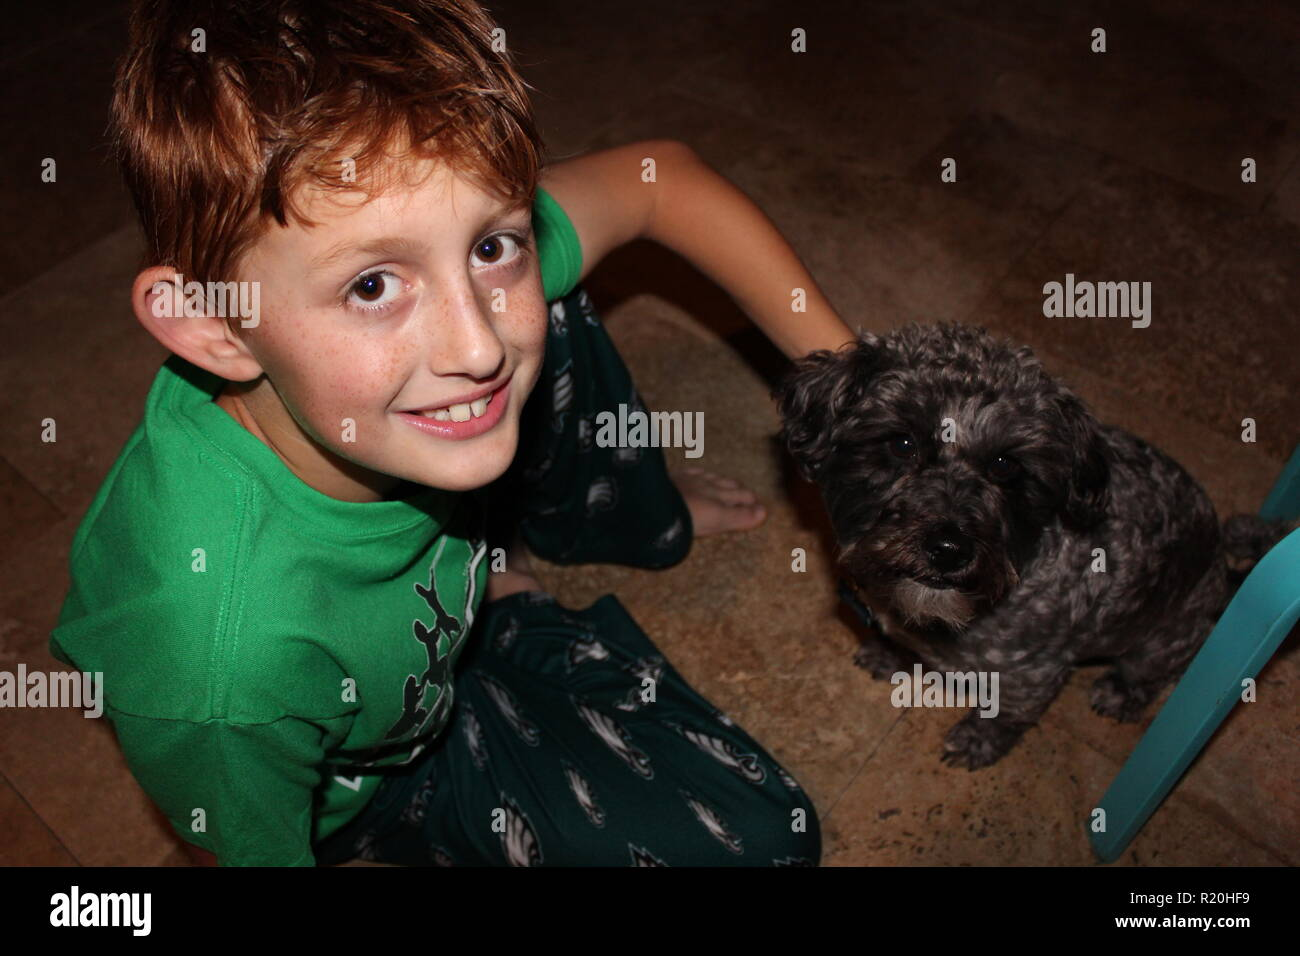 Close up of red headed boy with freckles rubbing his small black dog - Stock Image